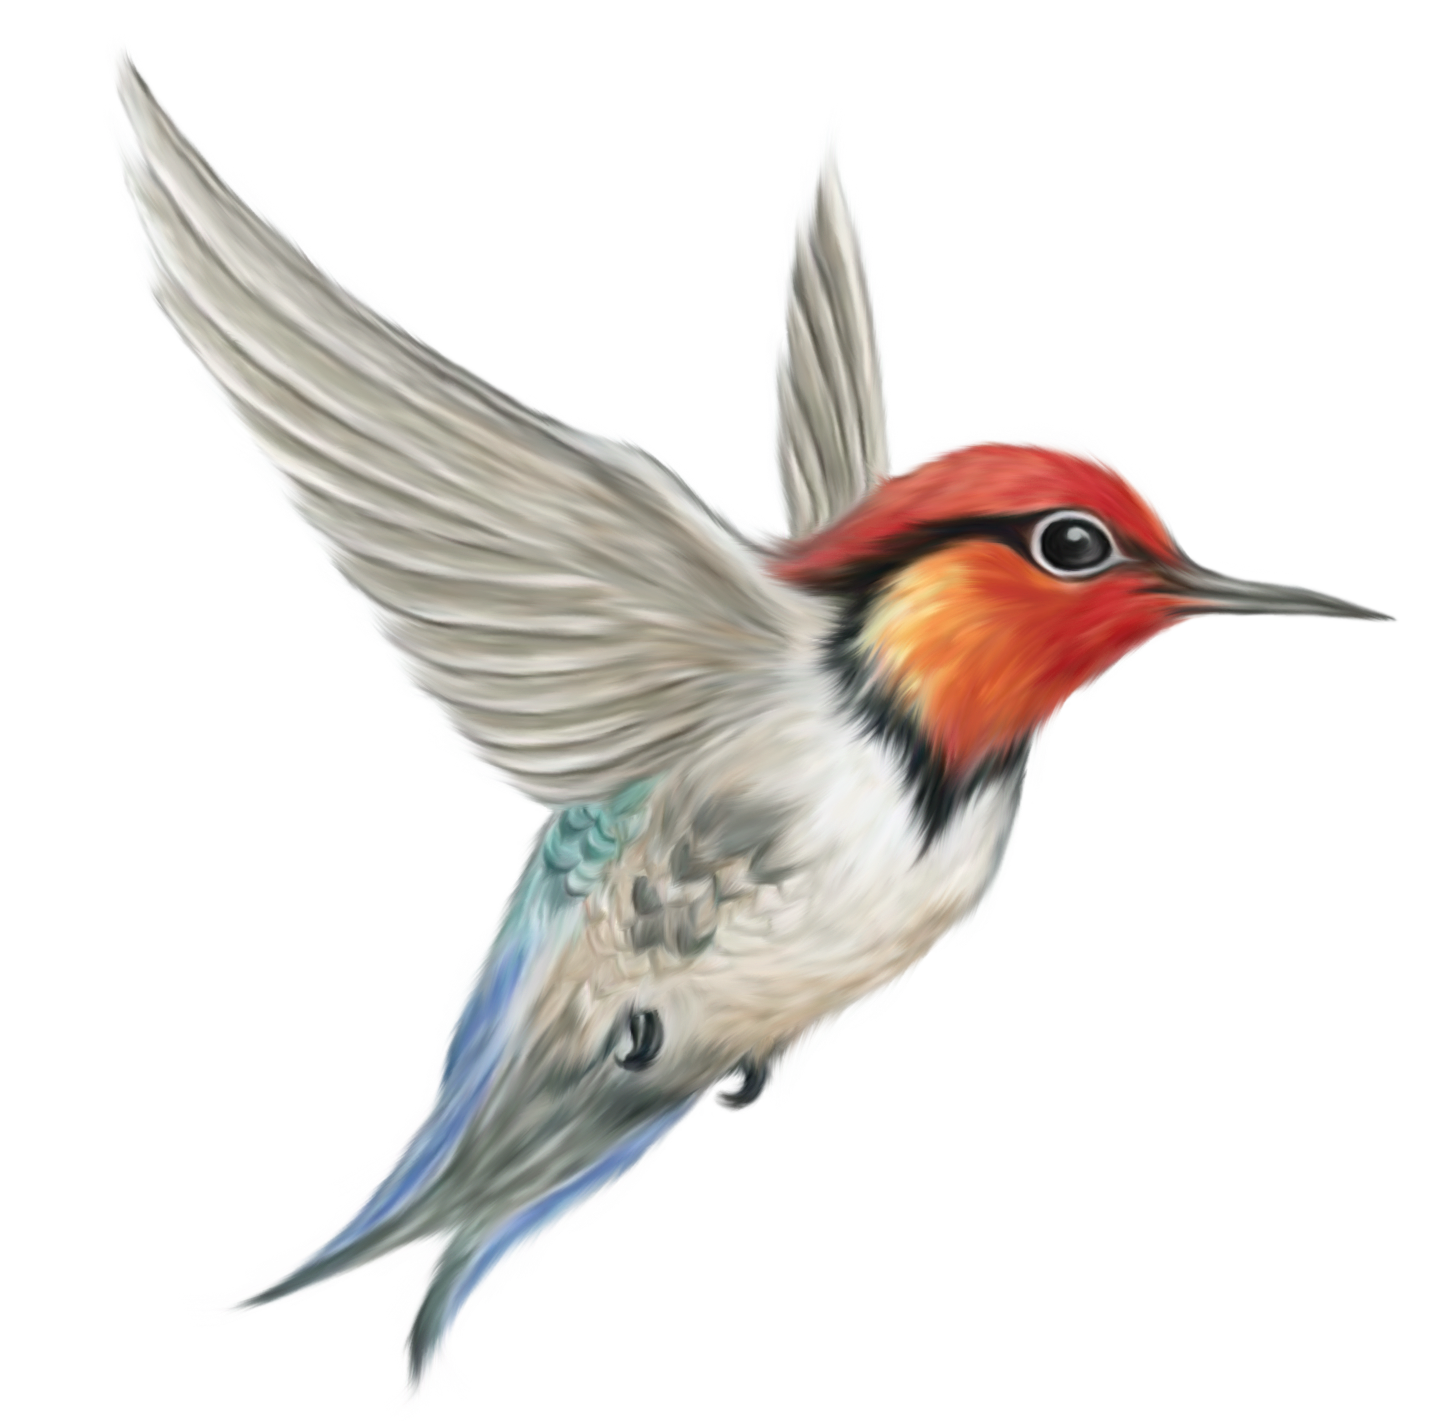 Clipart birds transparent background. Humming bird png picture